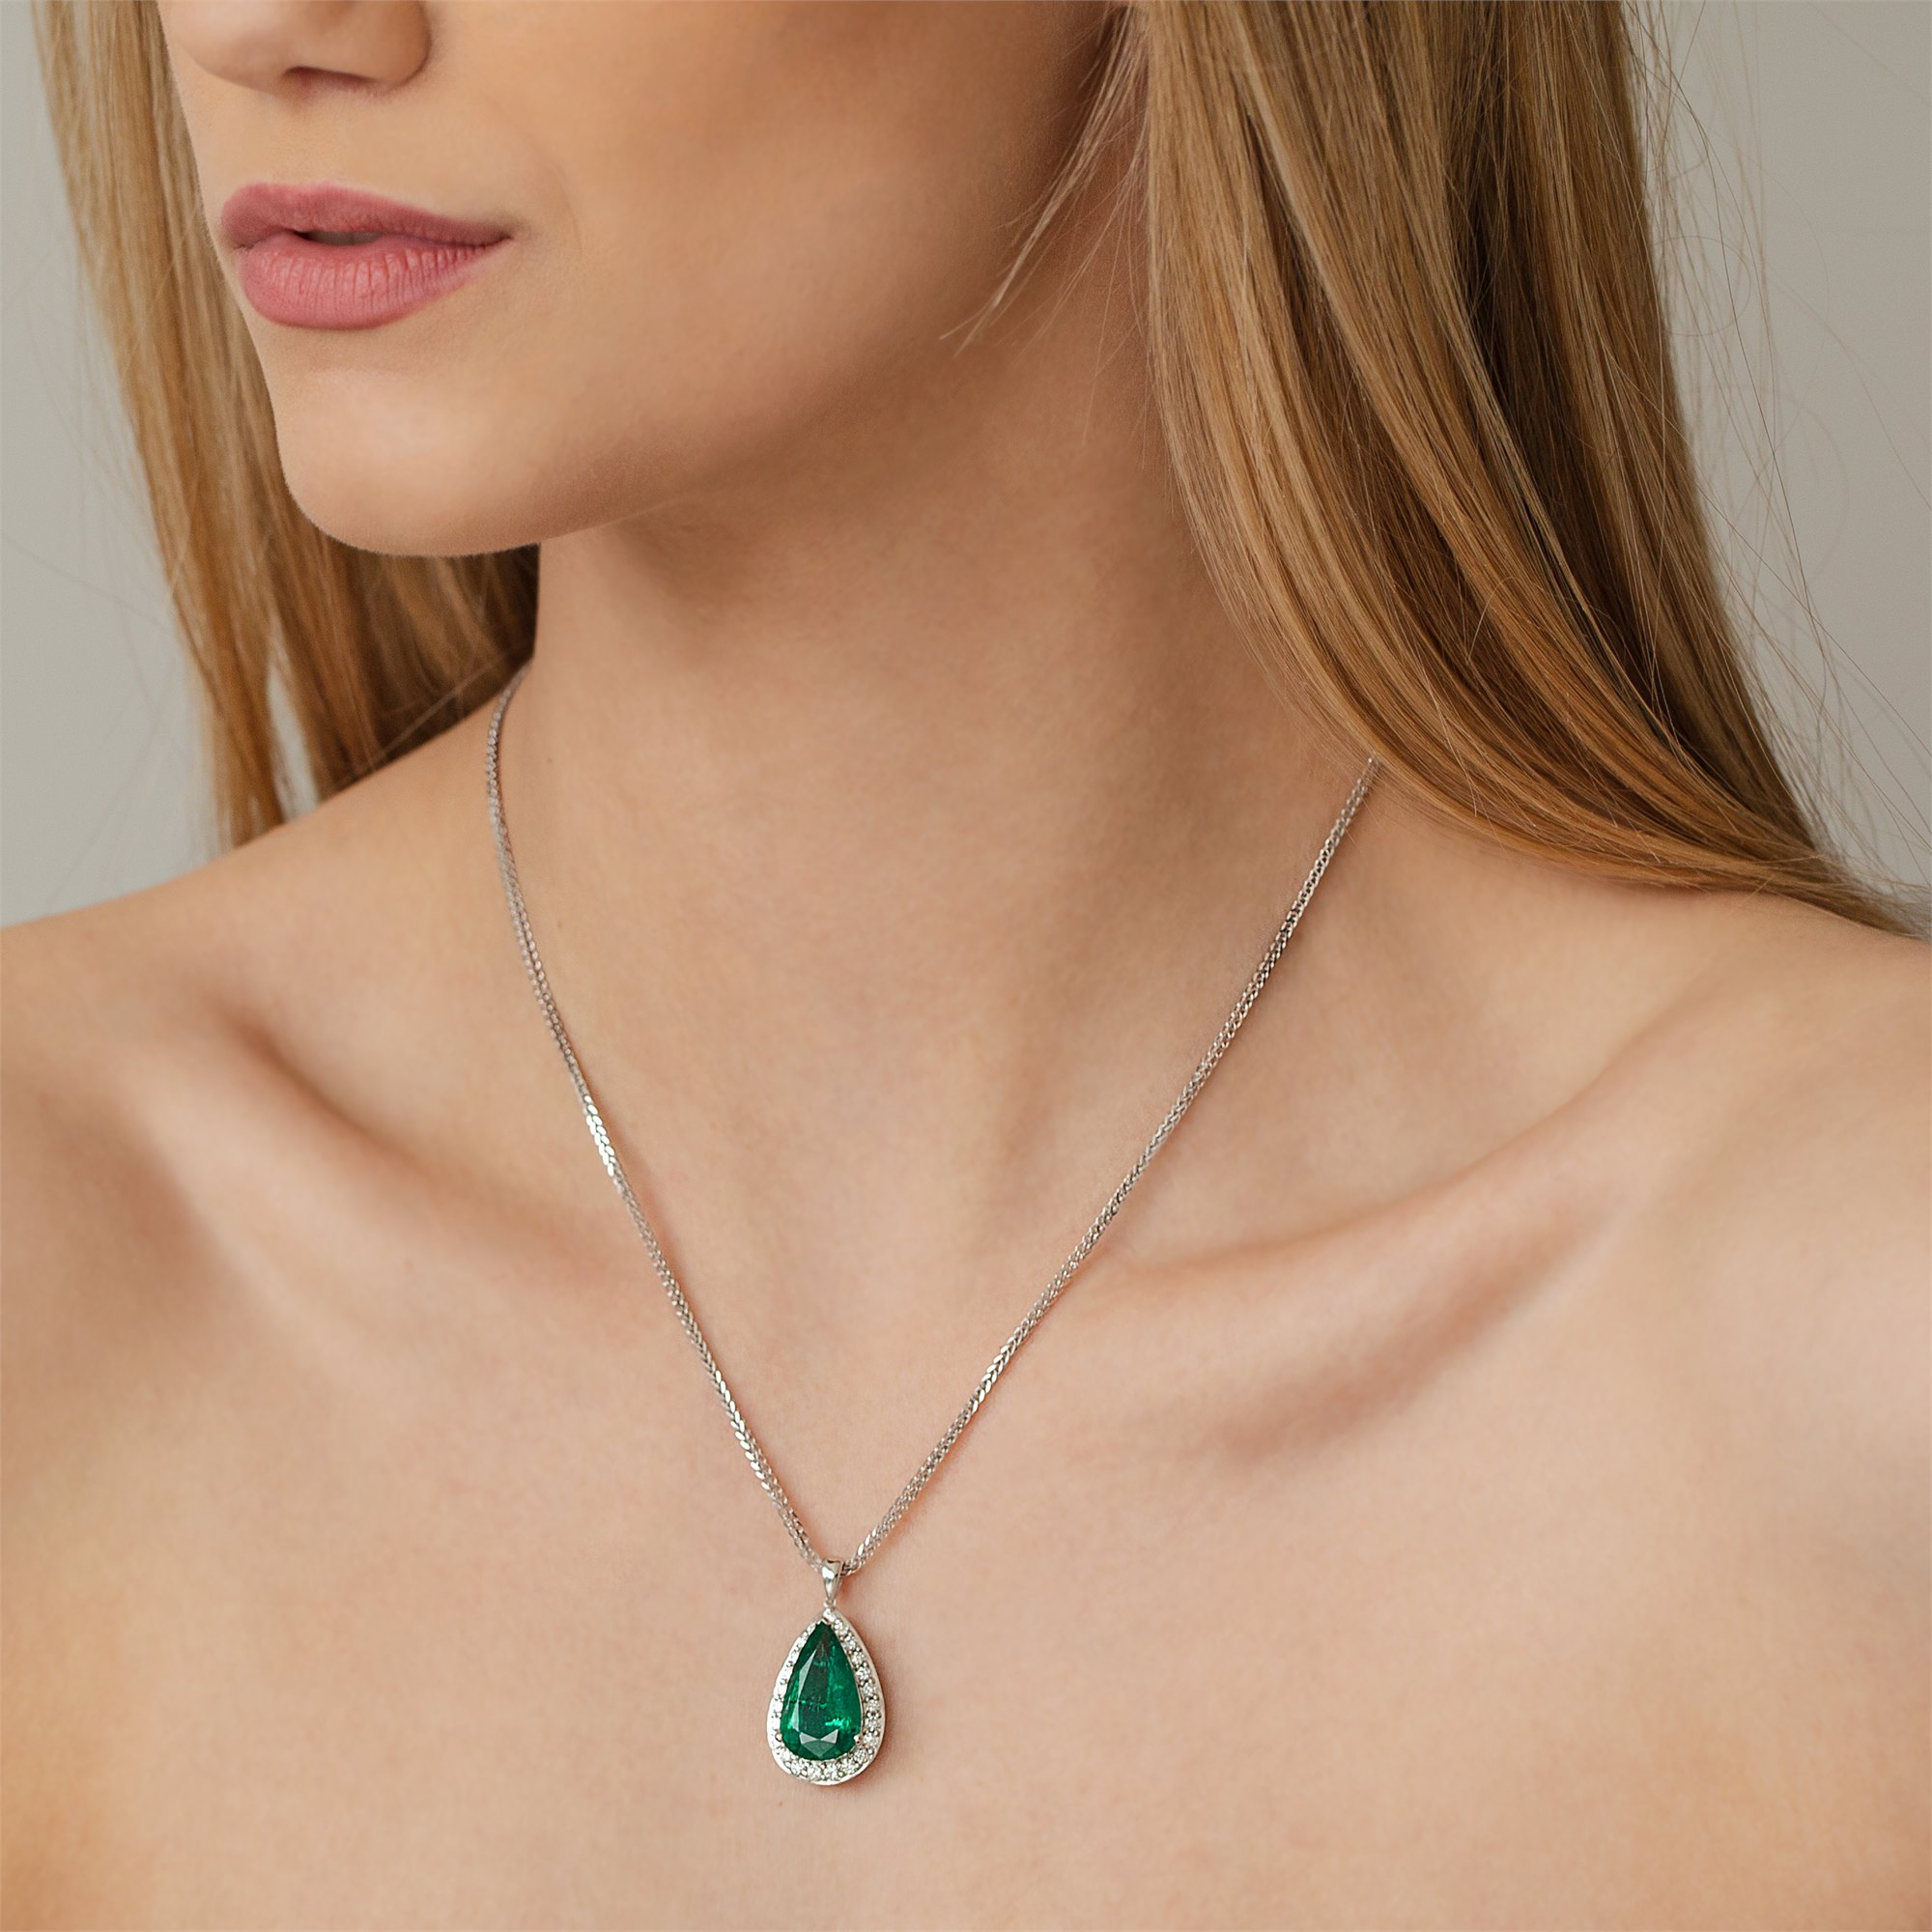 David Jerome 18k White Gold Emerald and Diamond Pendant